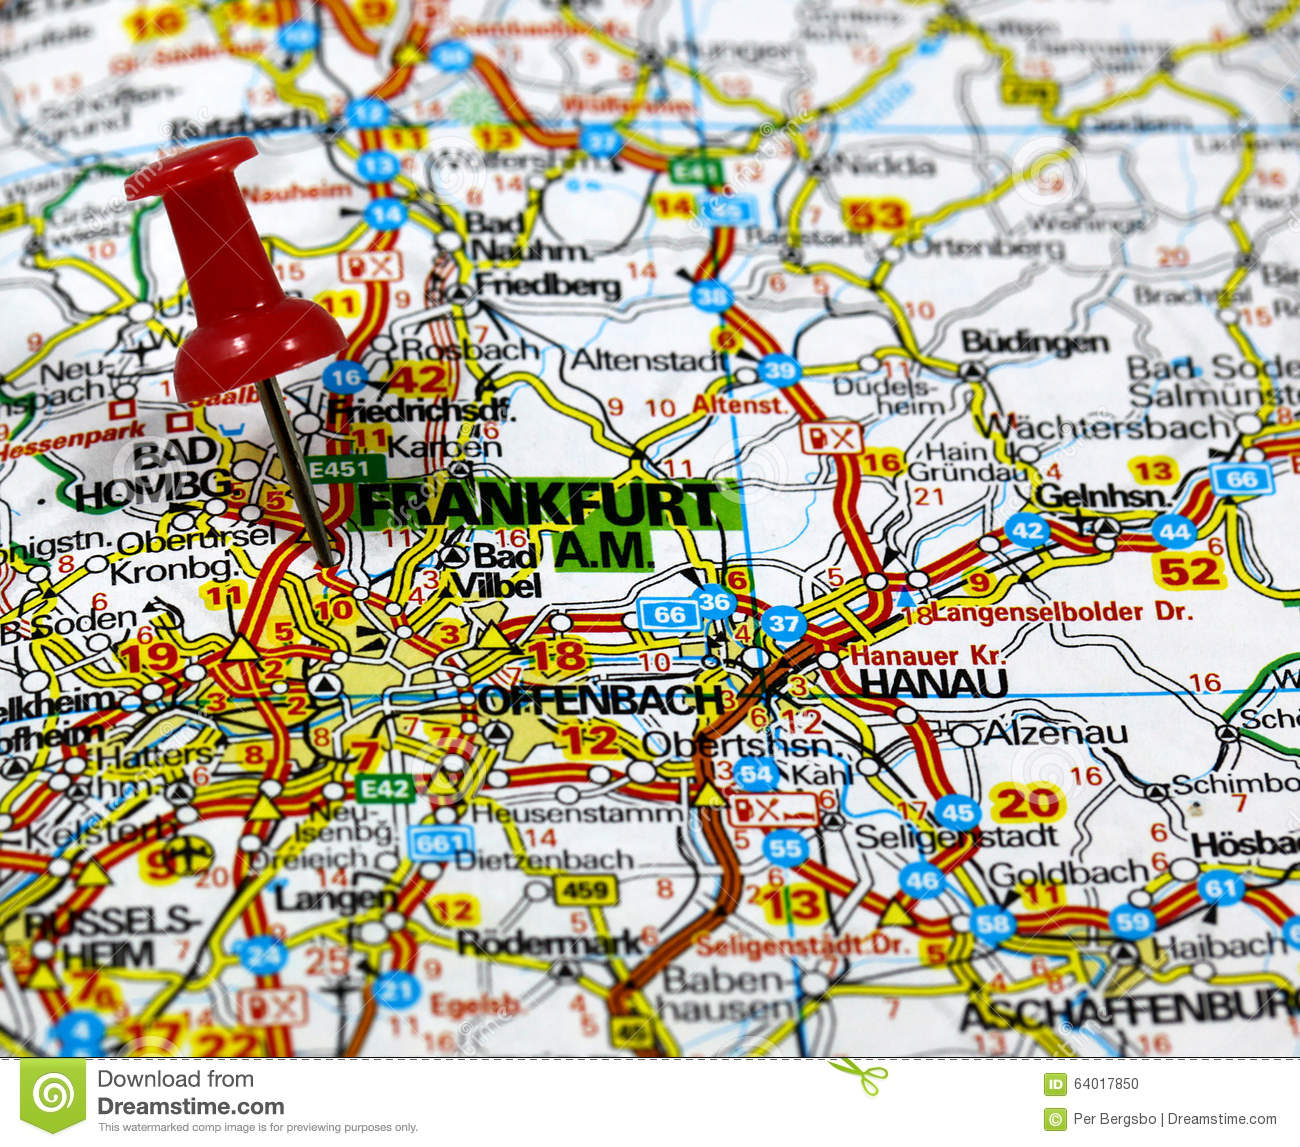 Budingen Germany Map.Frankfurt In Germany Stock Illustration Illustration Of Europe